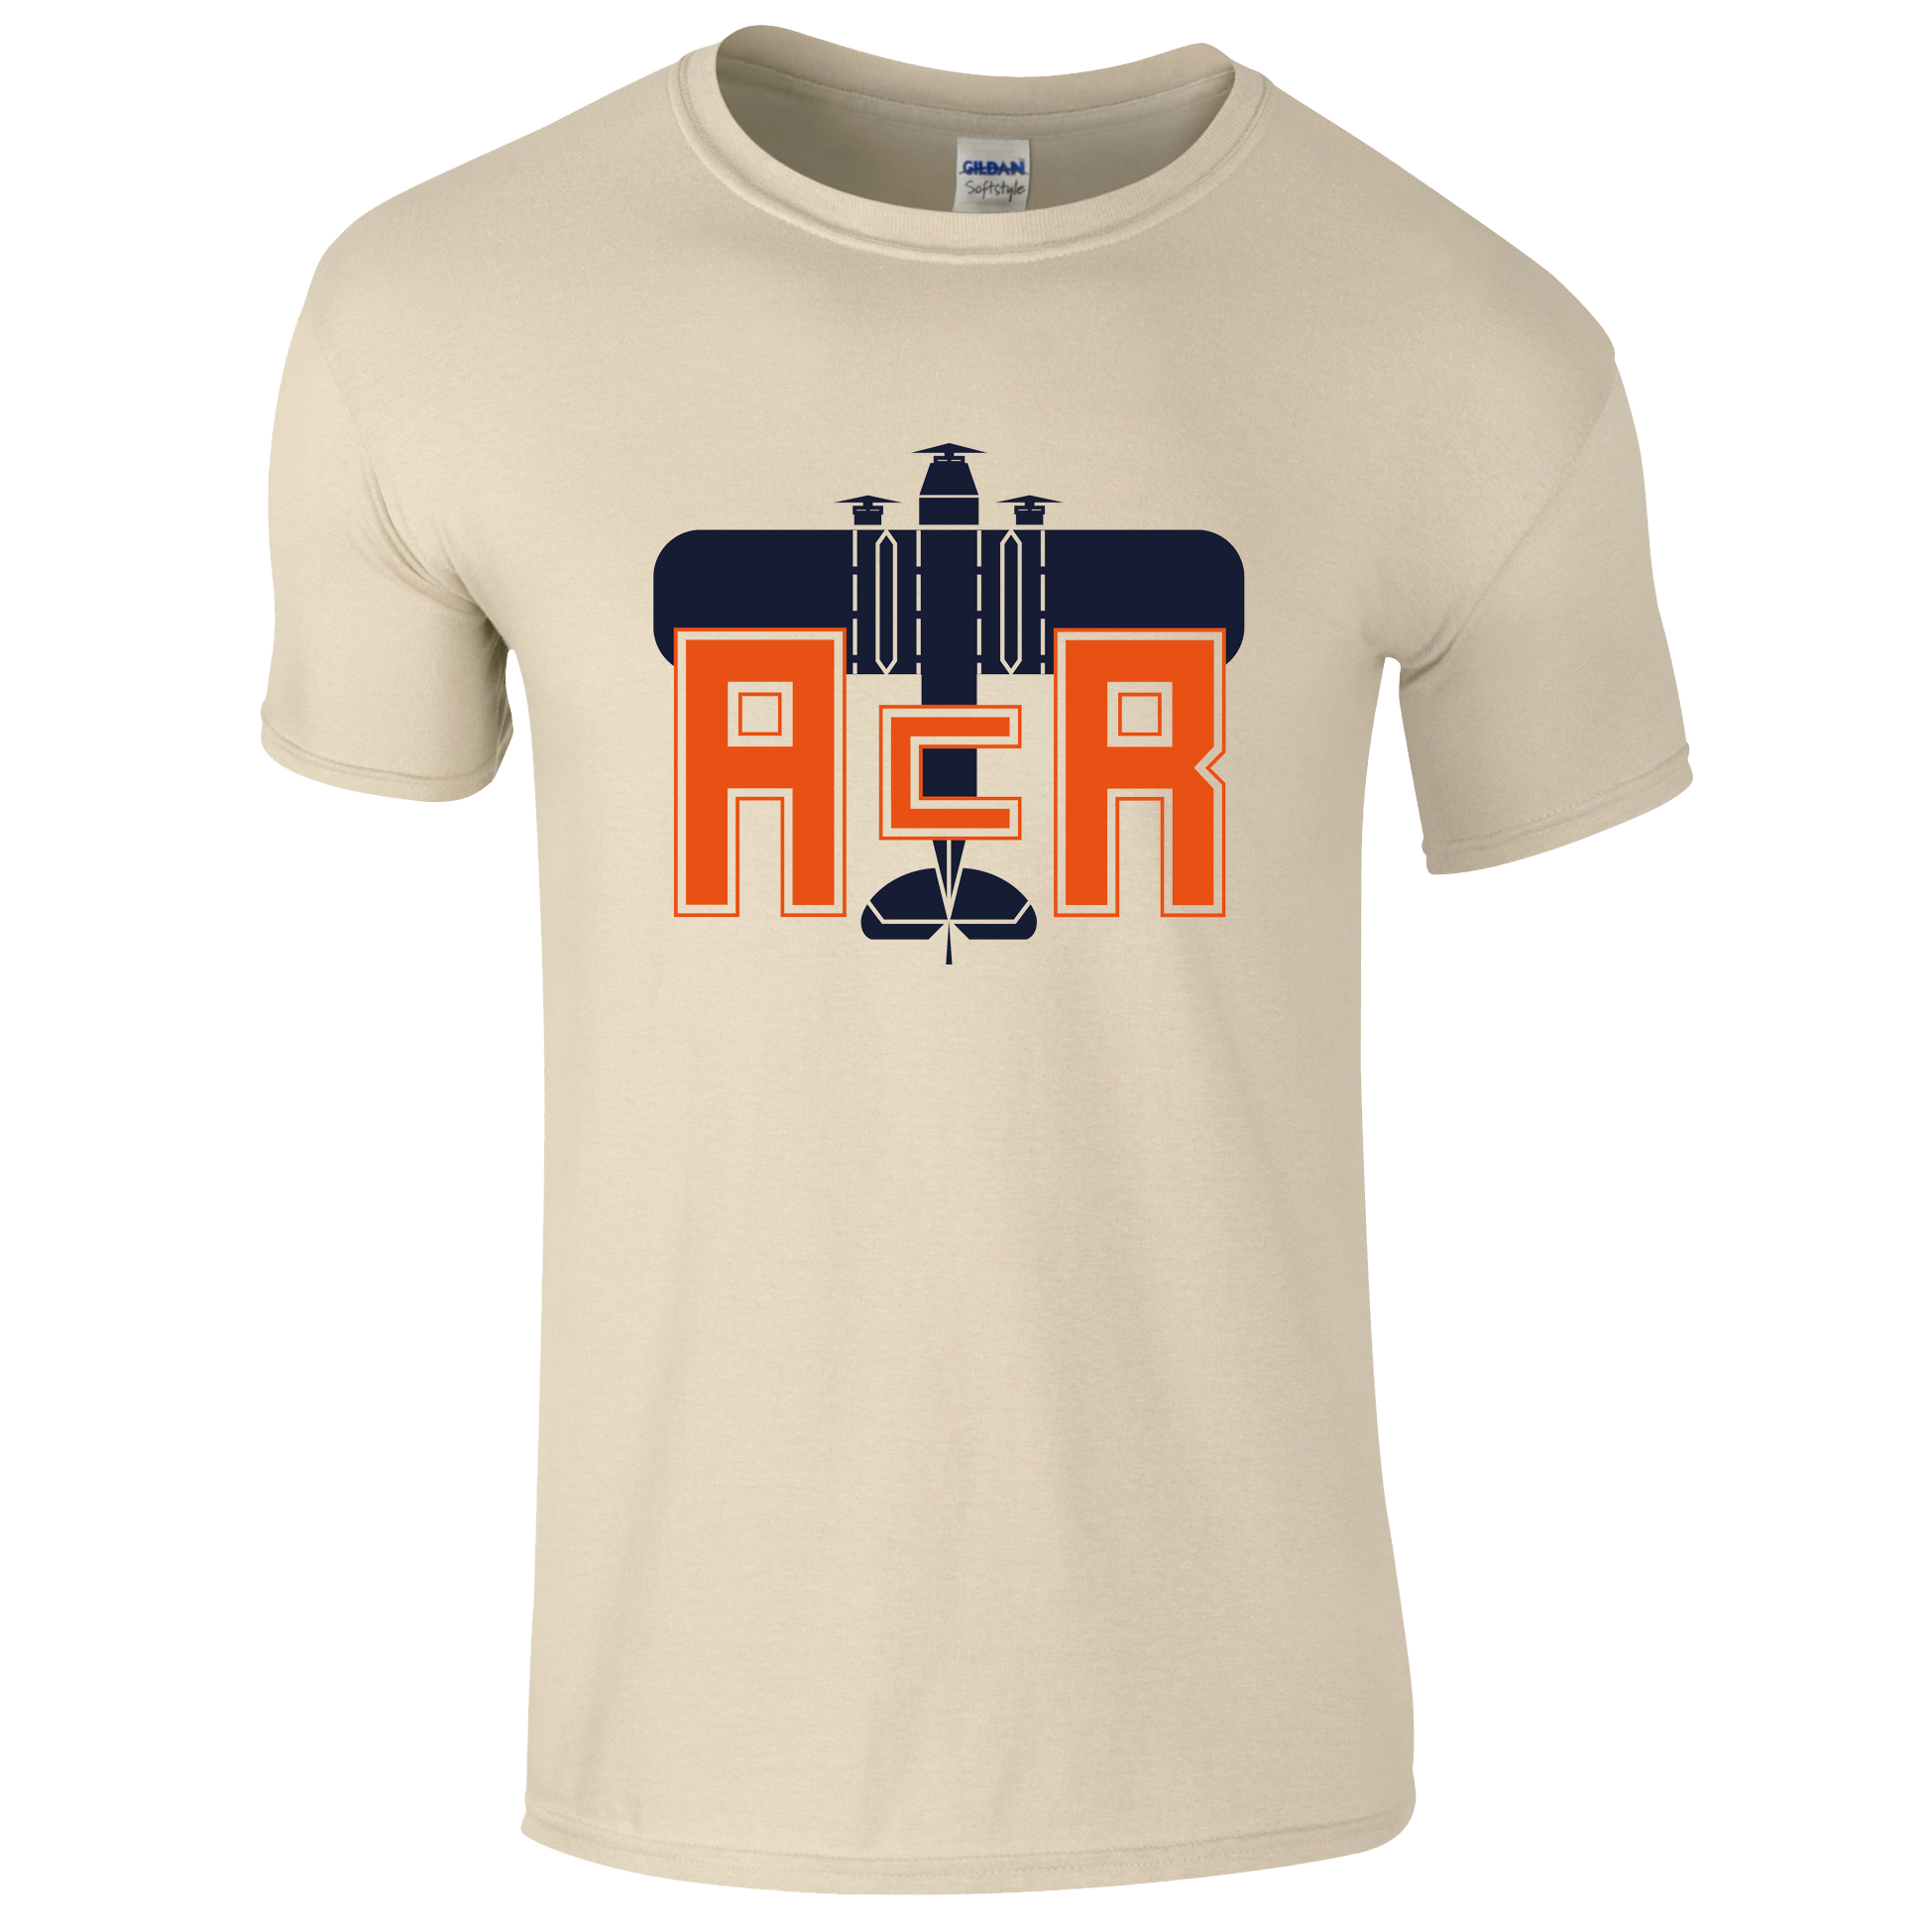 Buy Online ACR Retro Designs - ACR Wild Party Natural T-Shirt